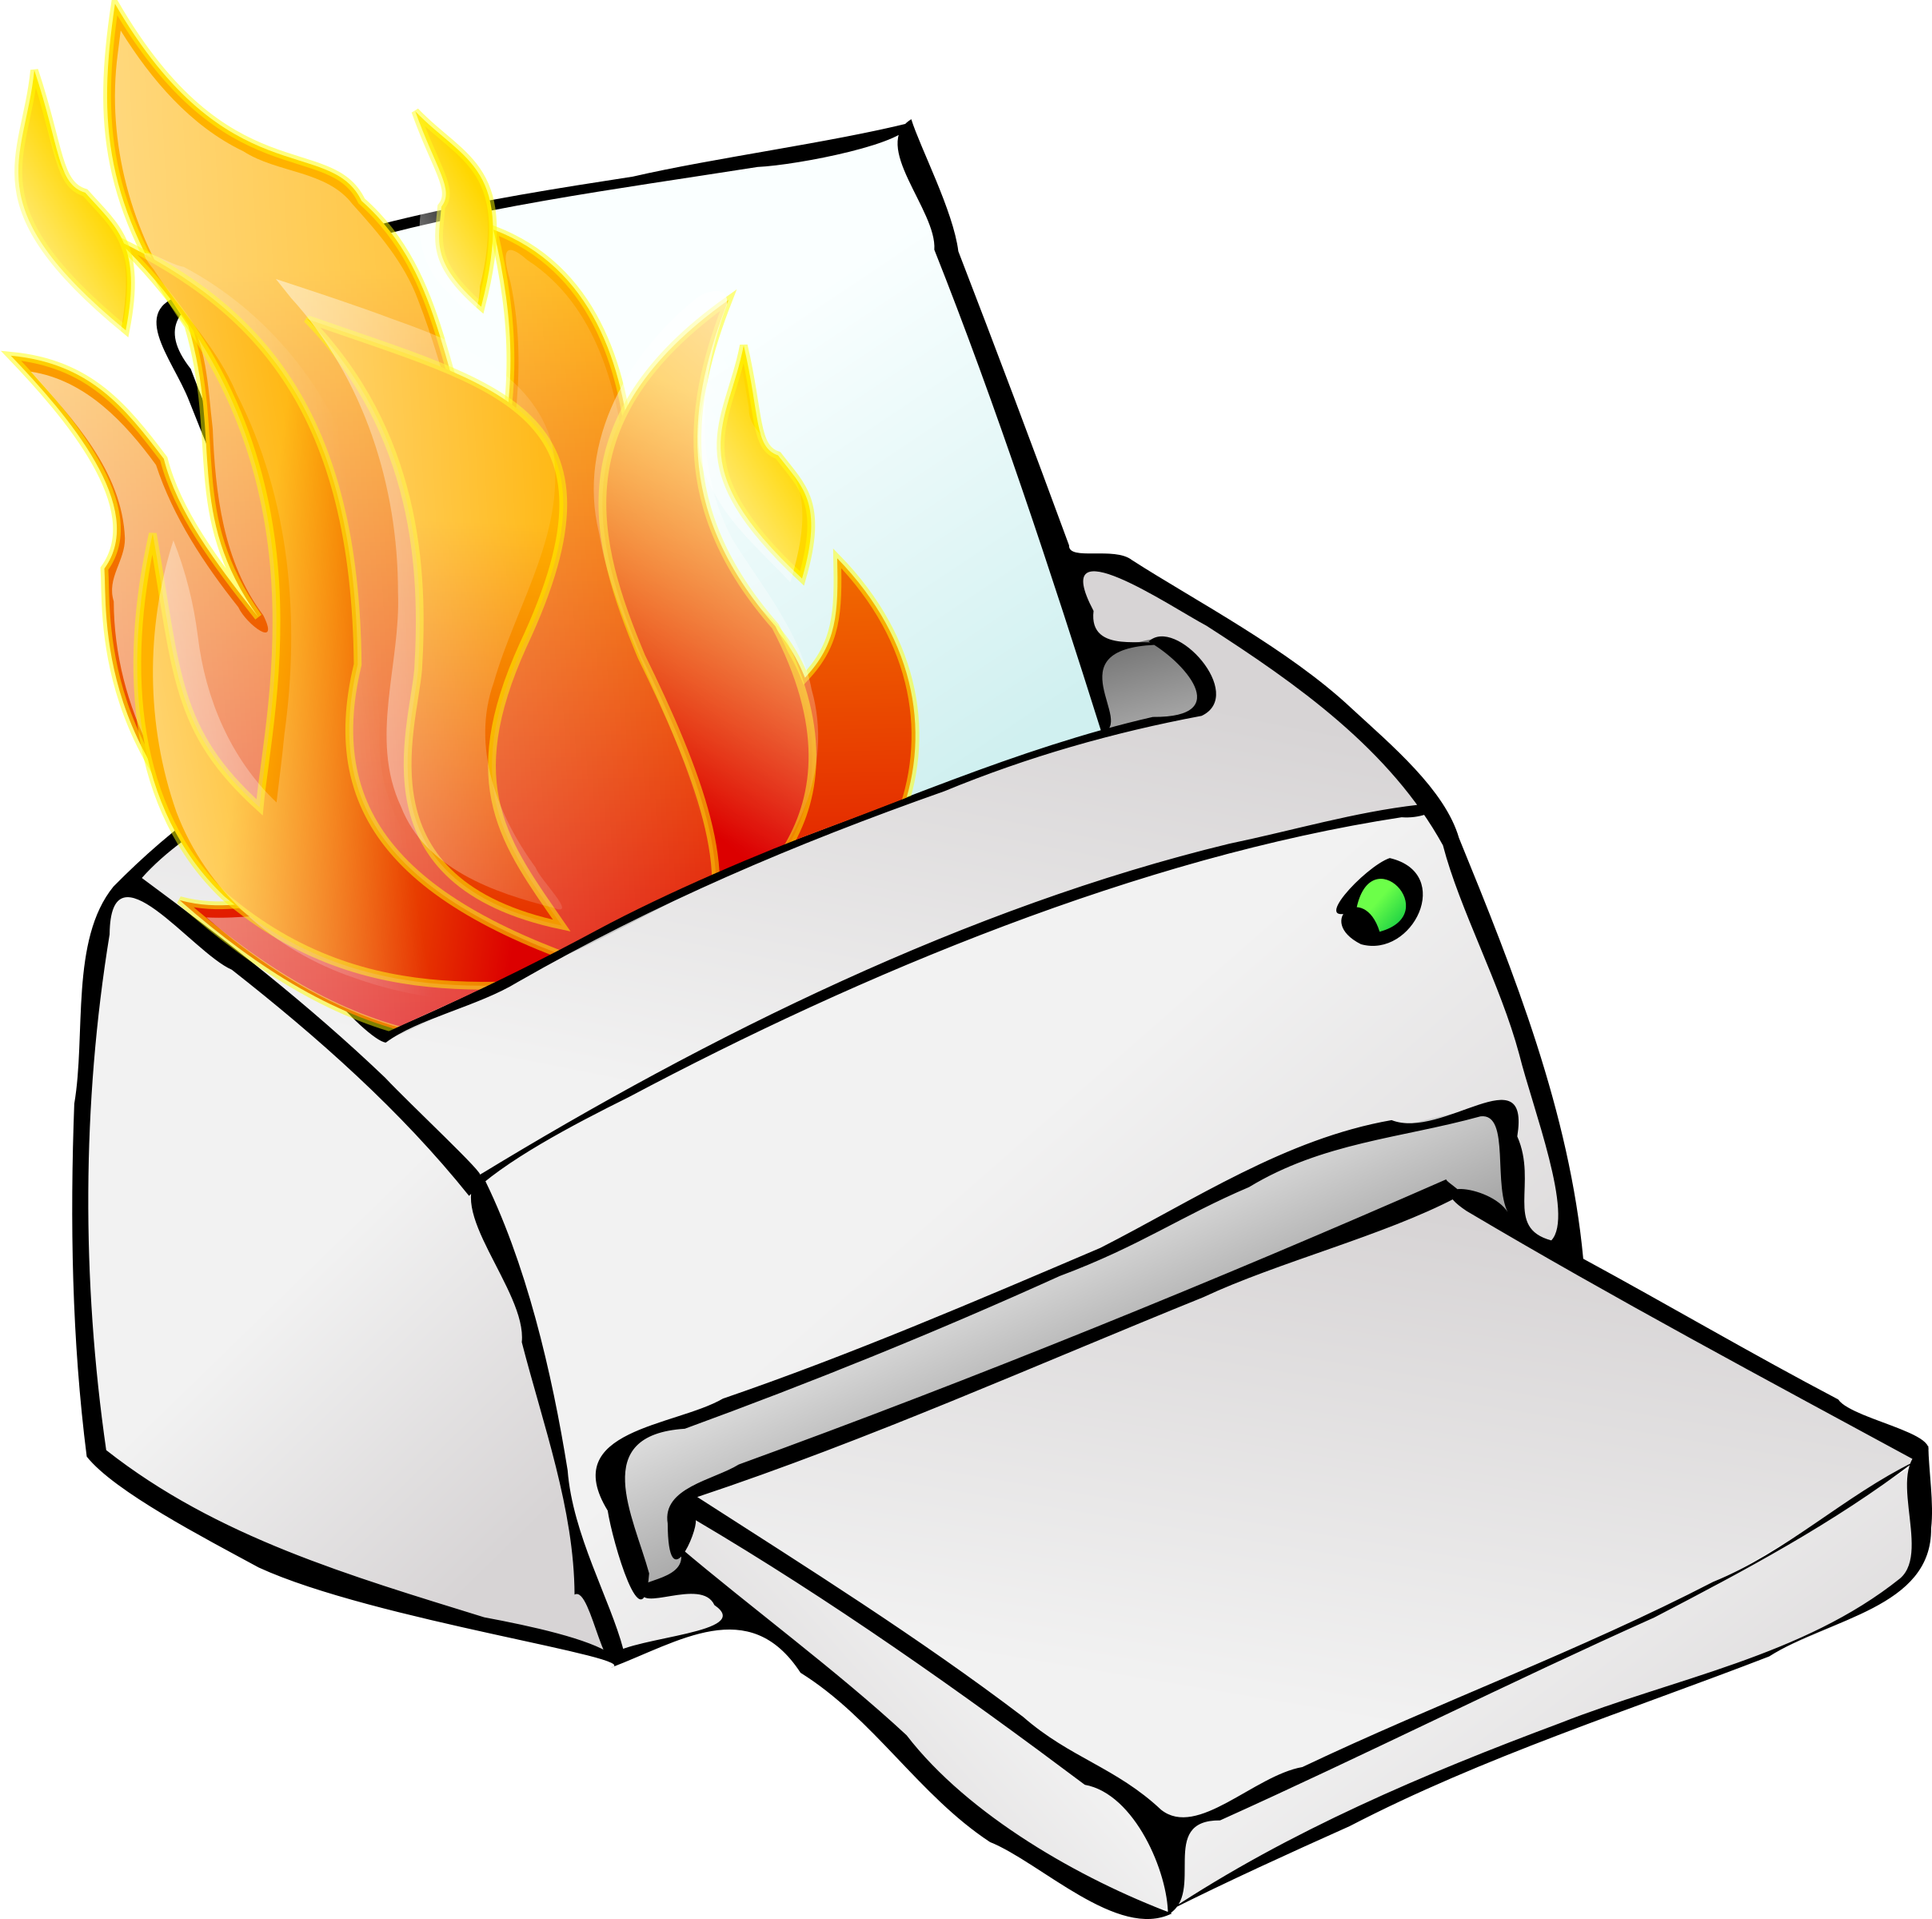 Printer on fire by Simon